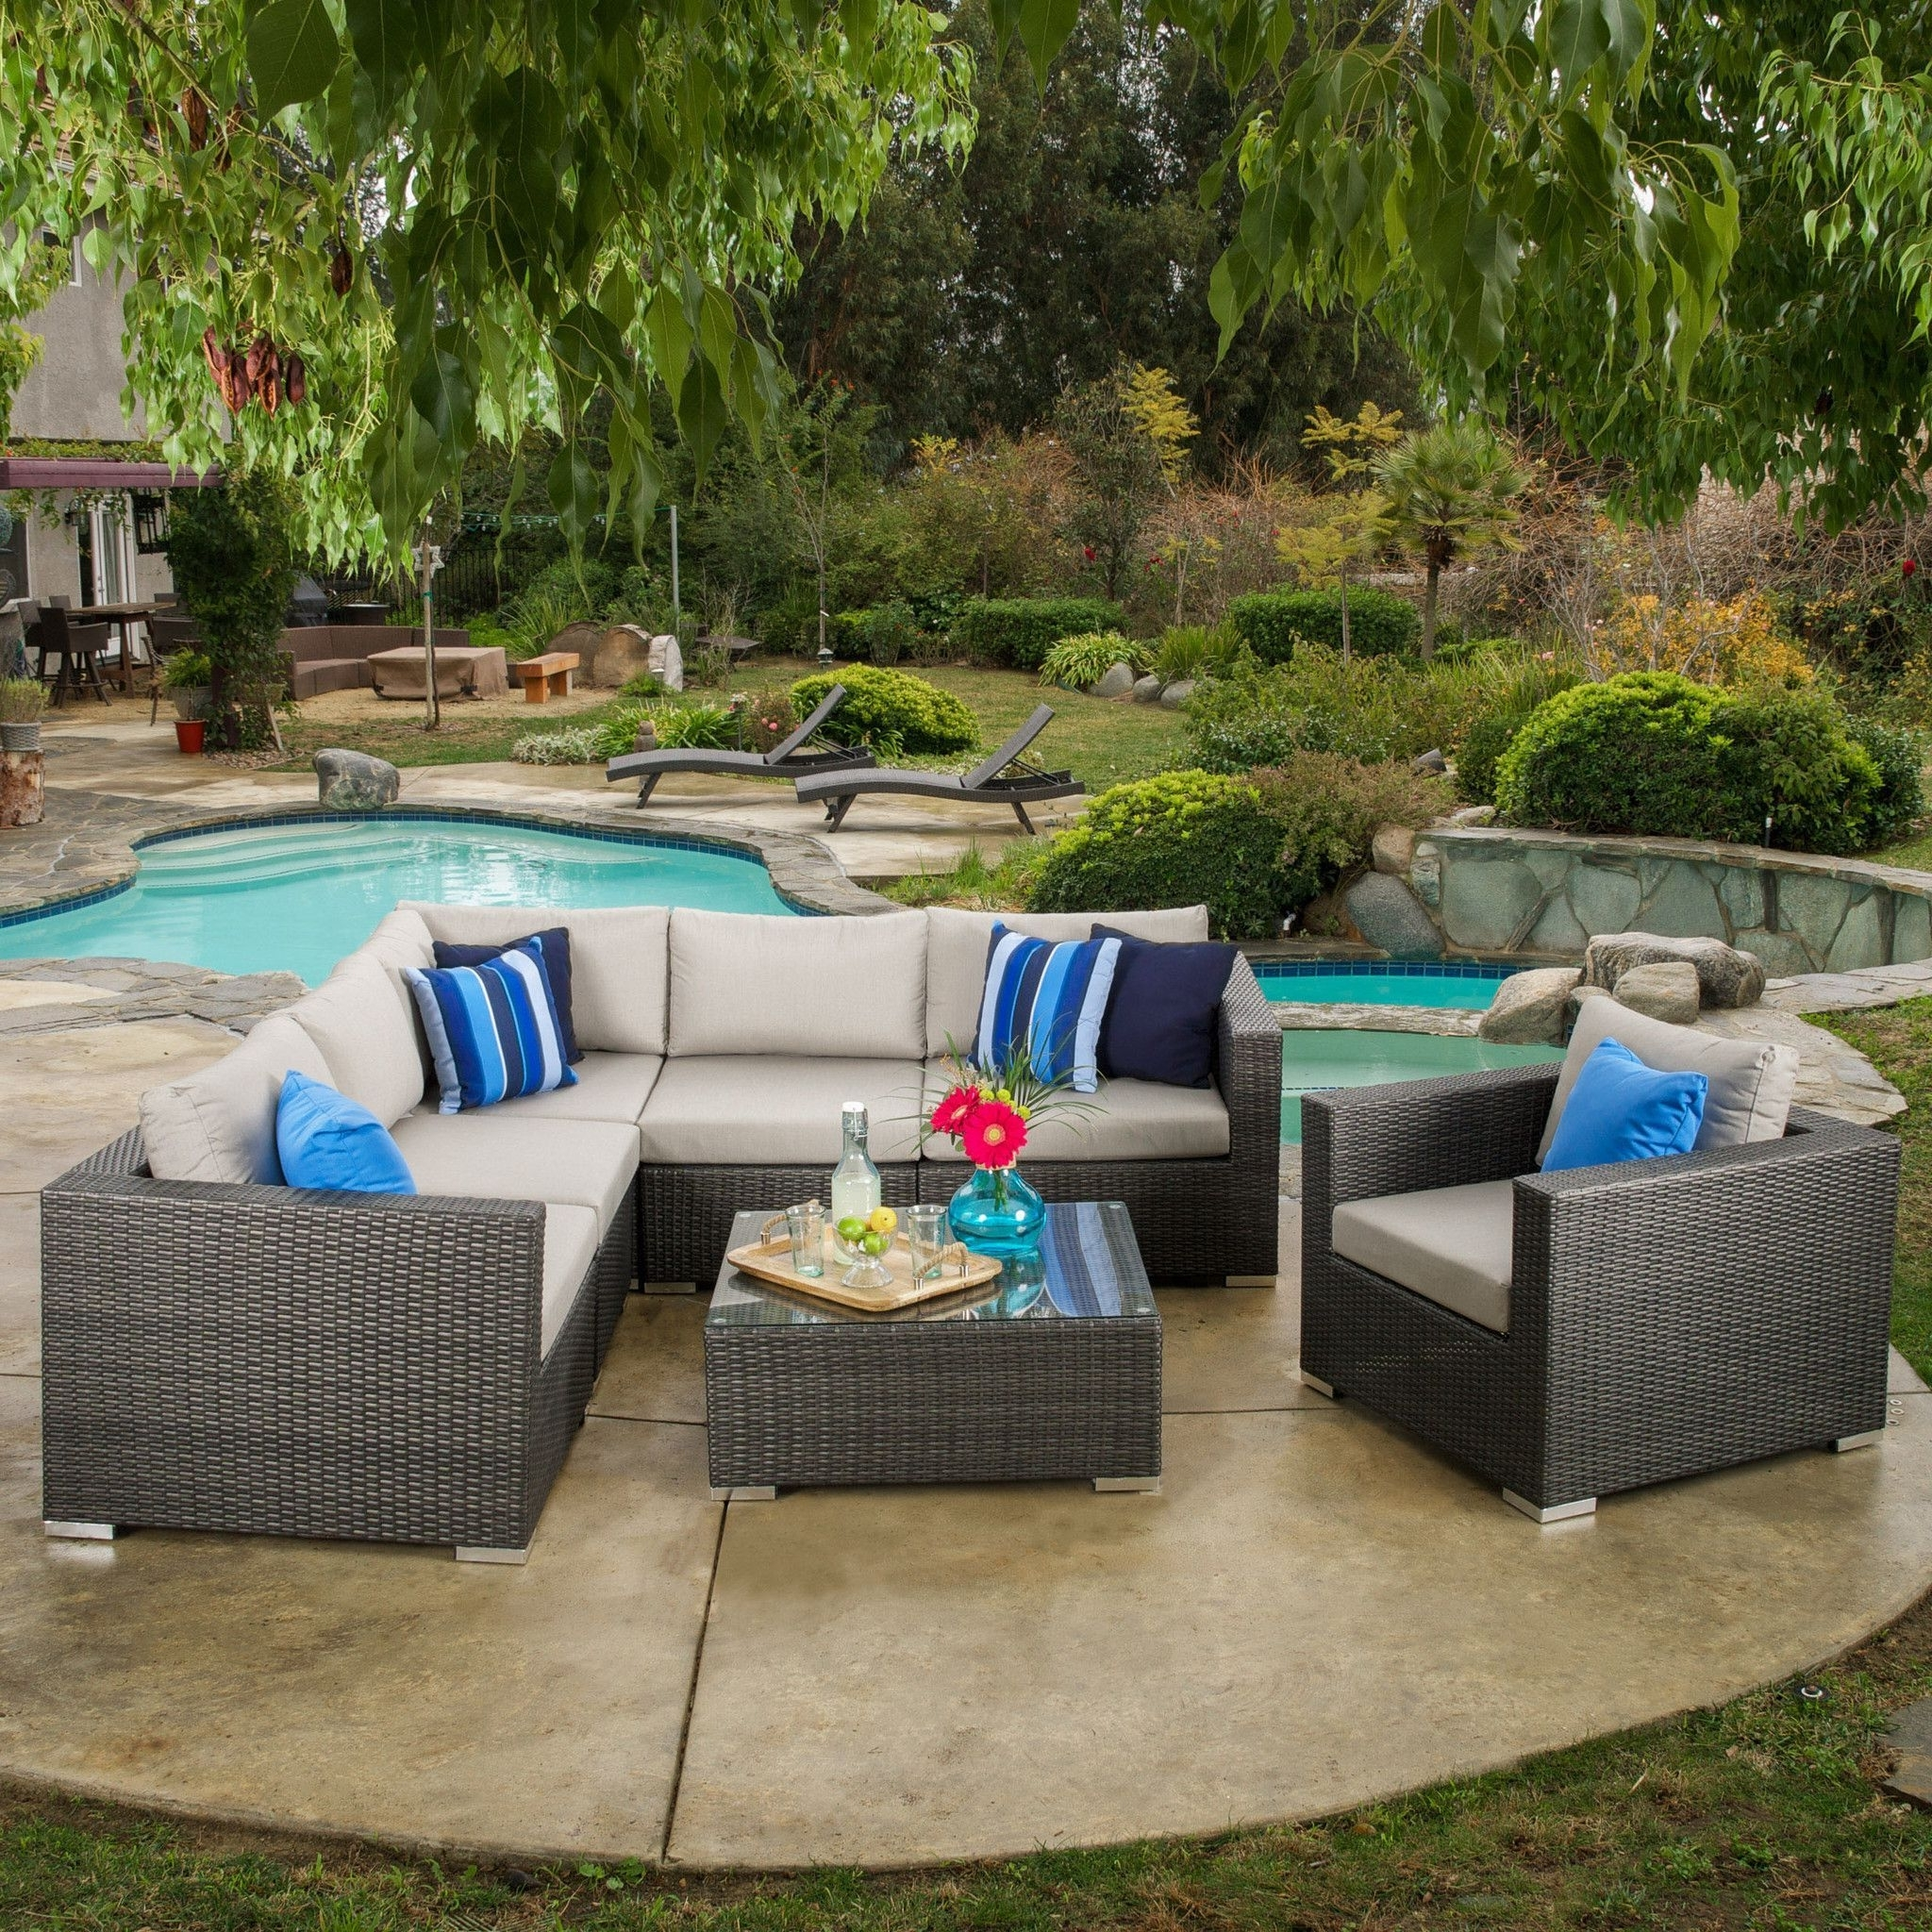 Patio Conversation Sets With Sunbrella Cushions In Fashionable Francisco Outdoor 7 Piece Grey Wicker Seating Sectional Set With (View 10 of 20)